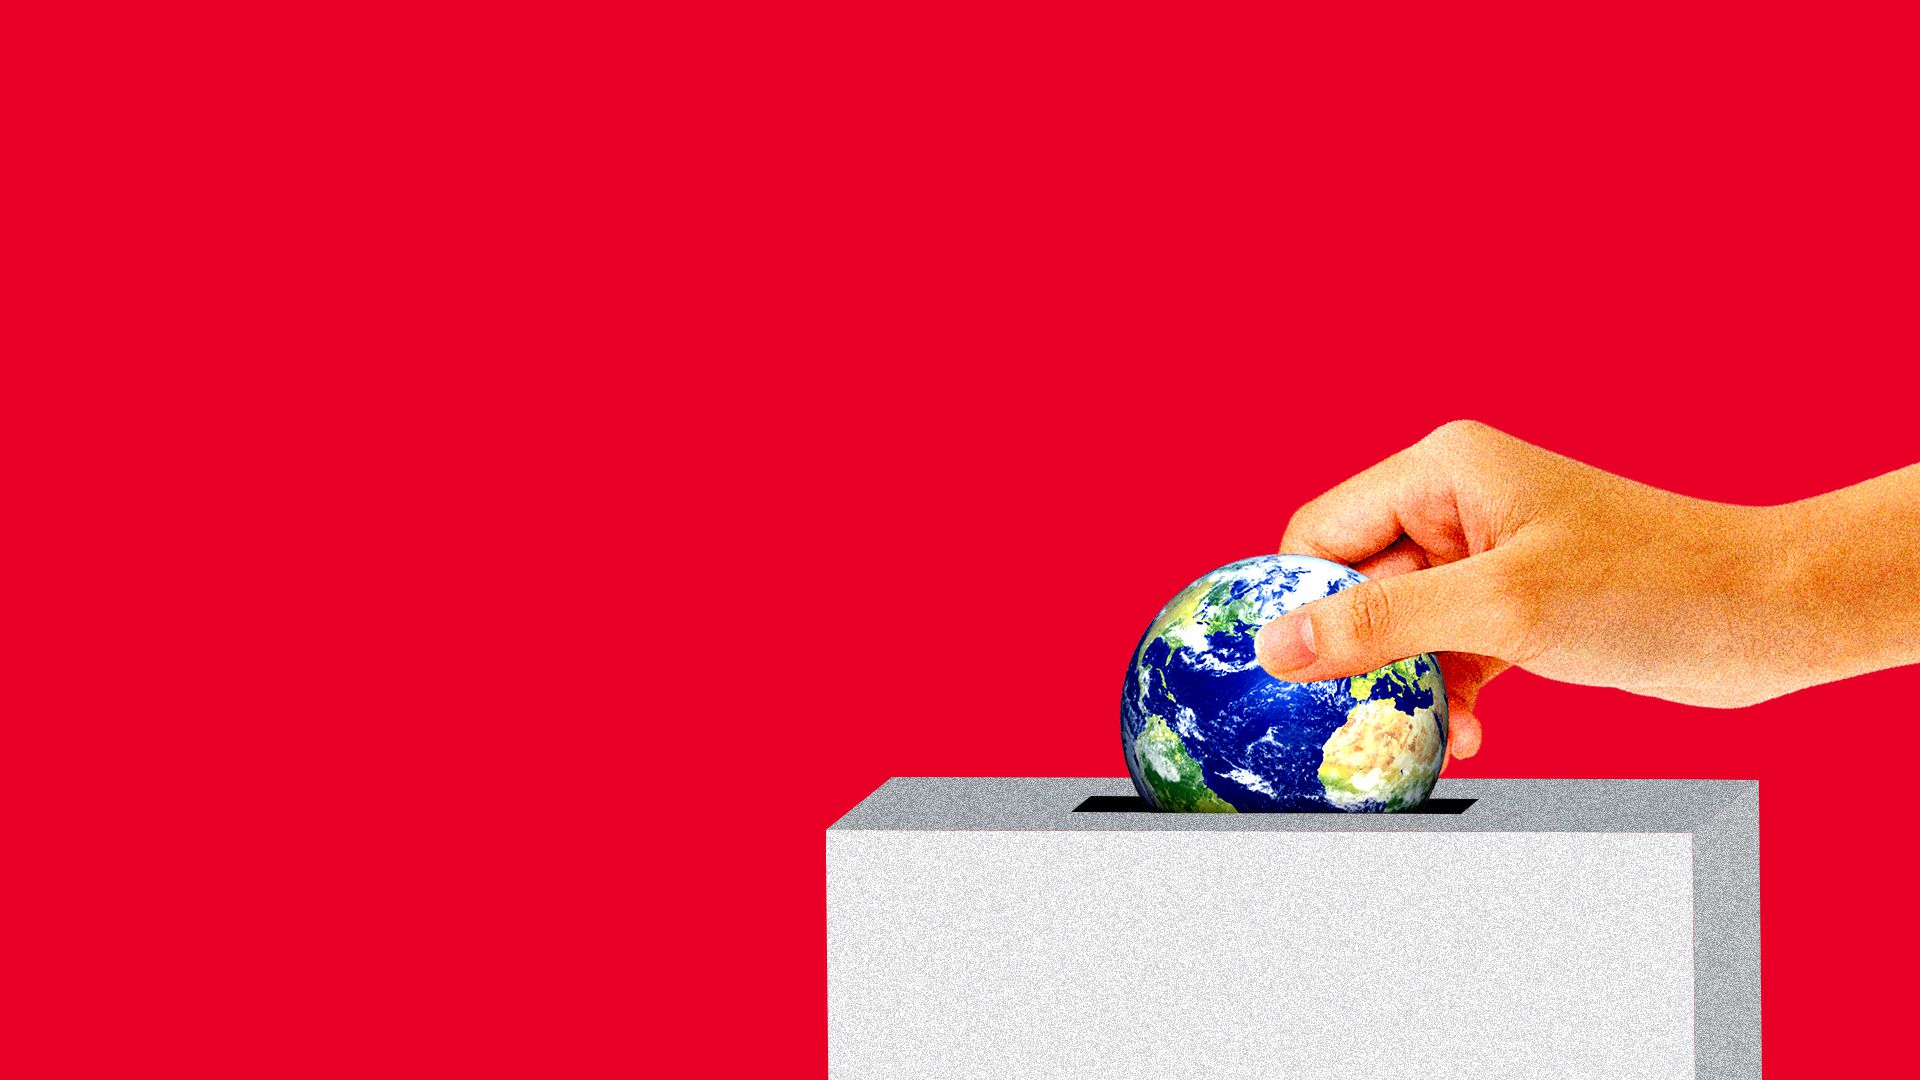 Hand puts in a mini Earth into ballot box.